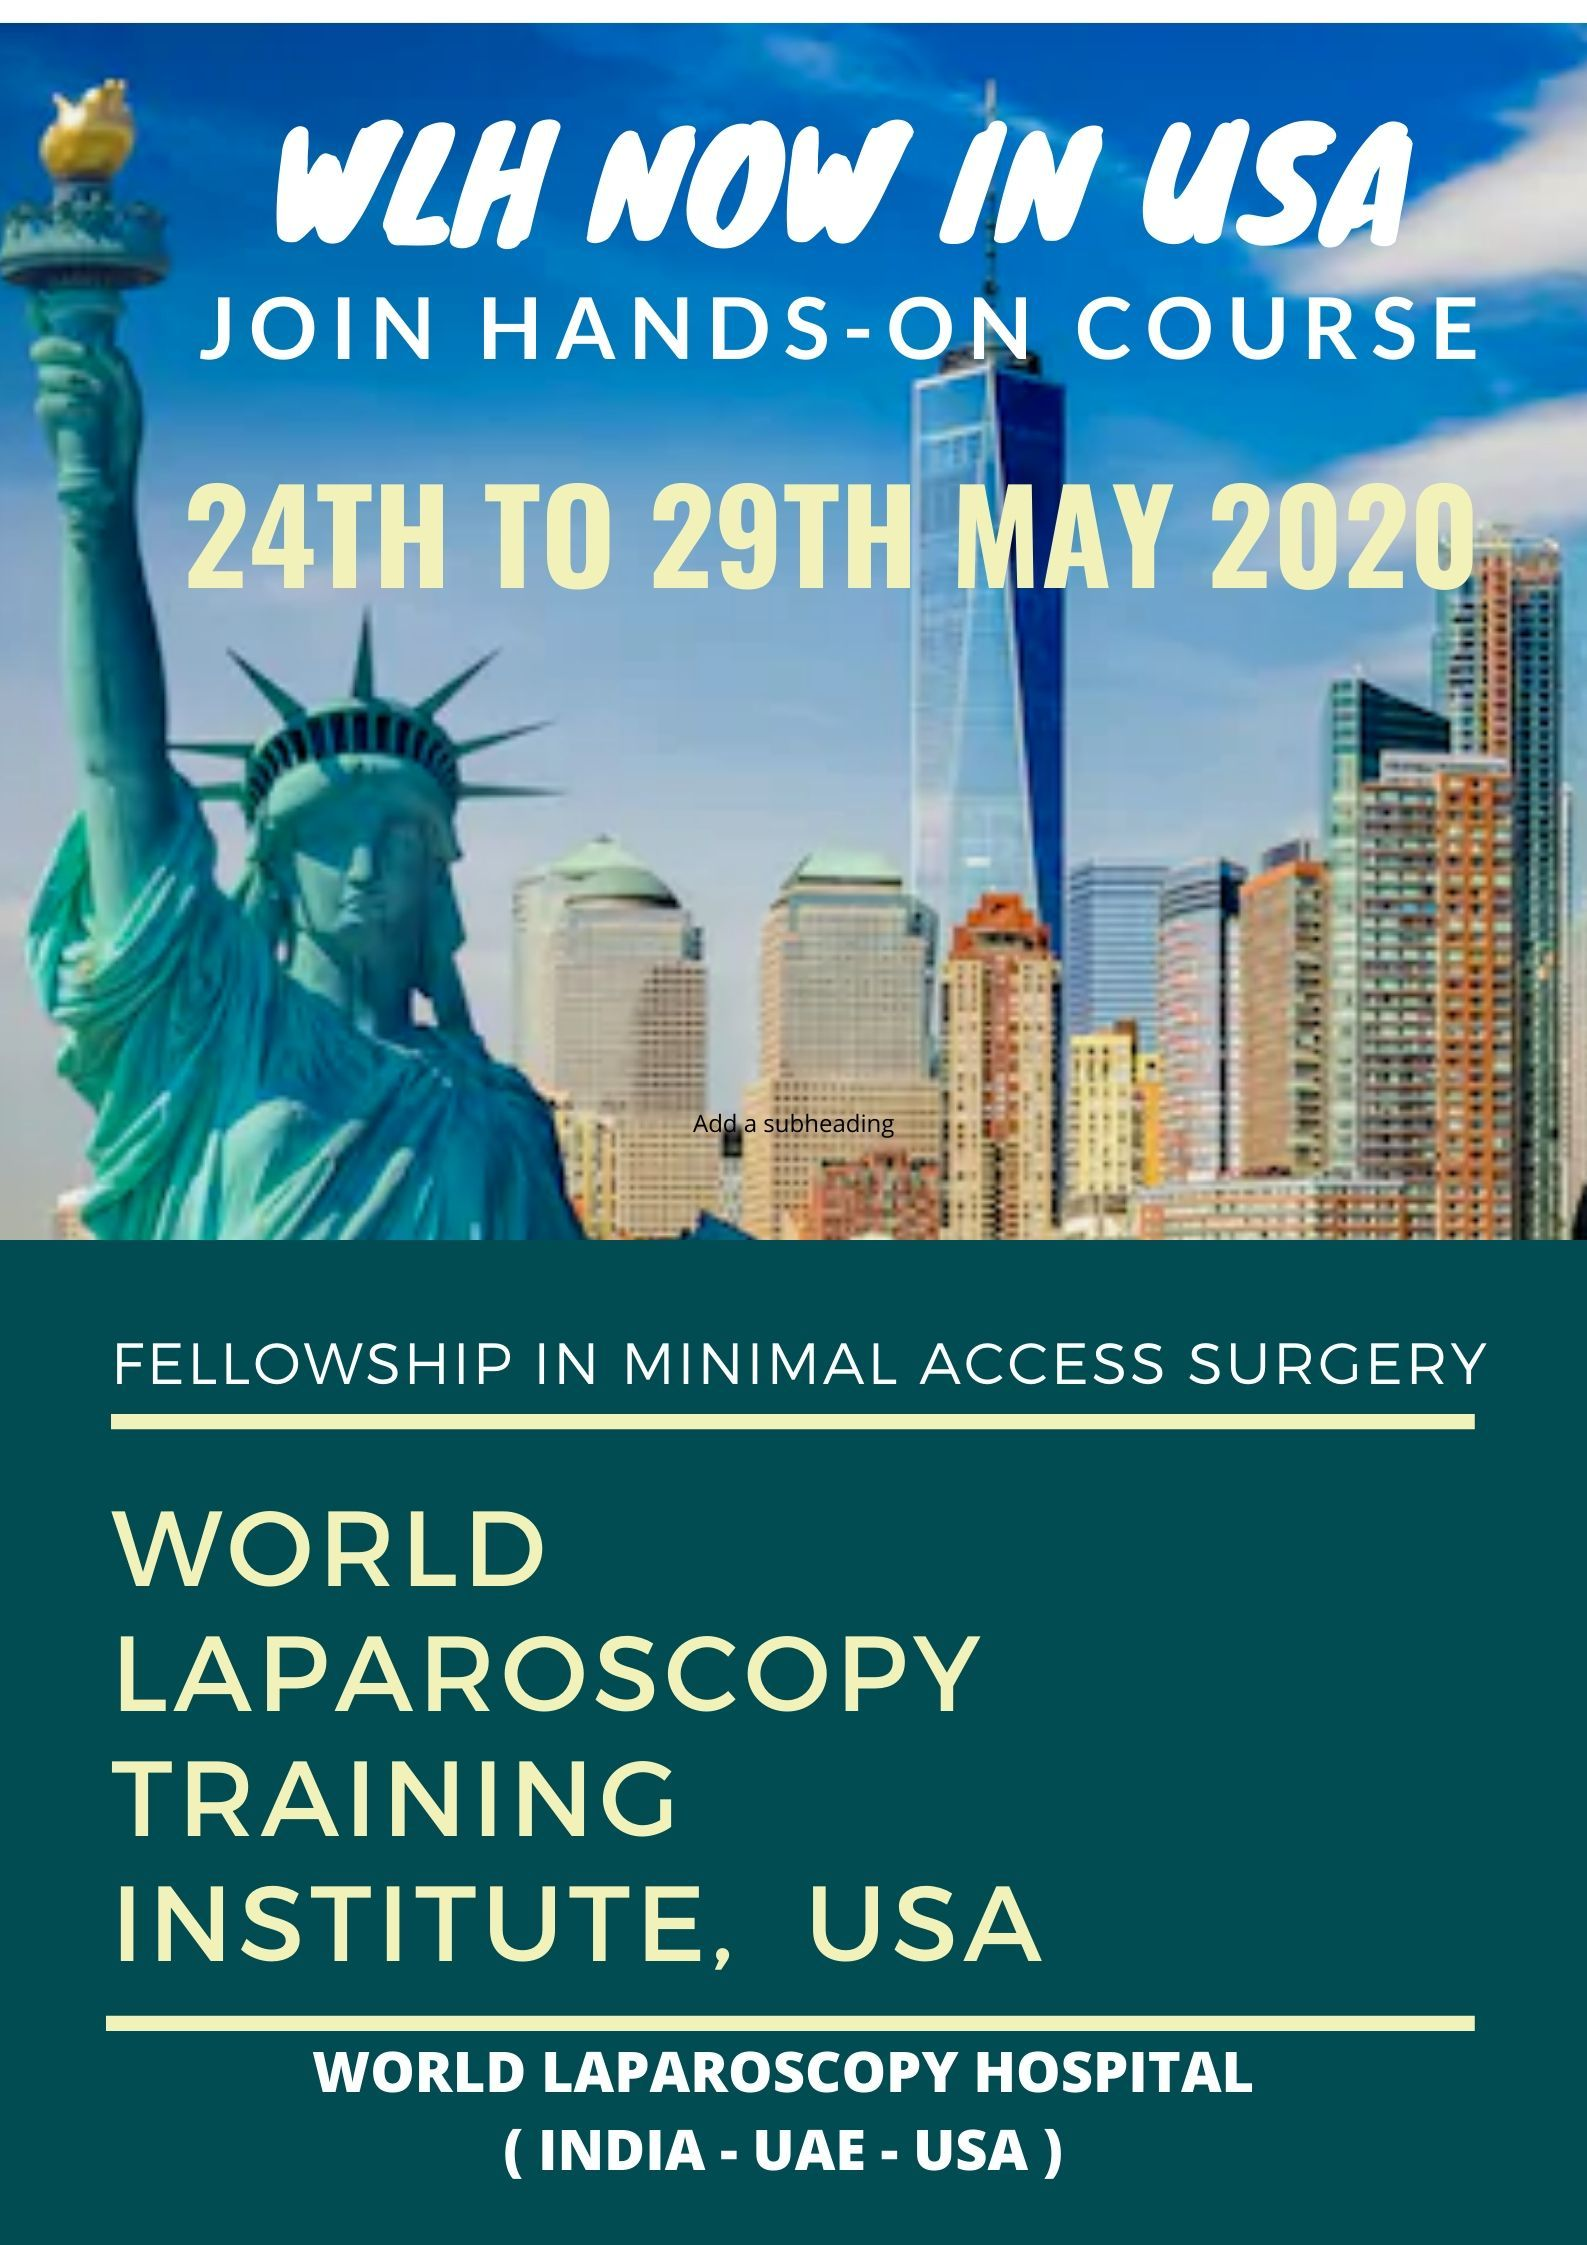 Laparoscopic Training in USA